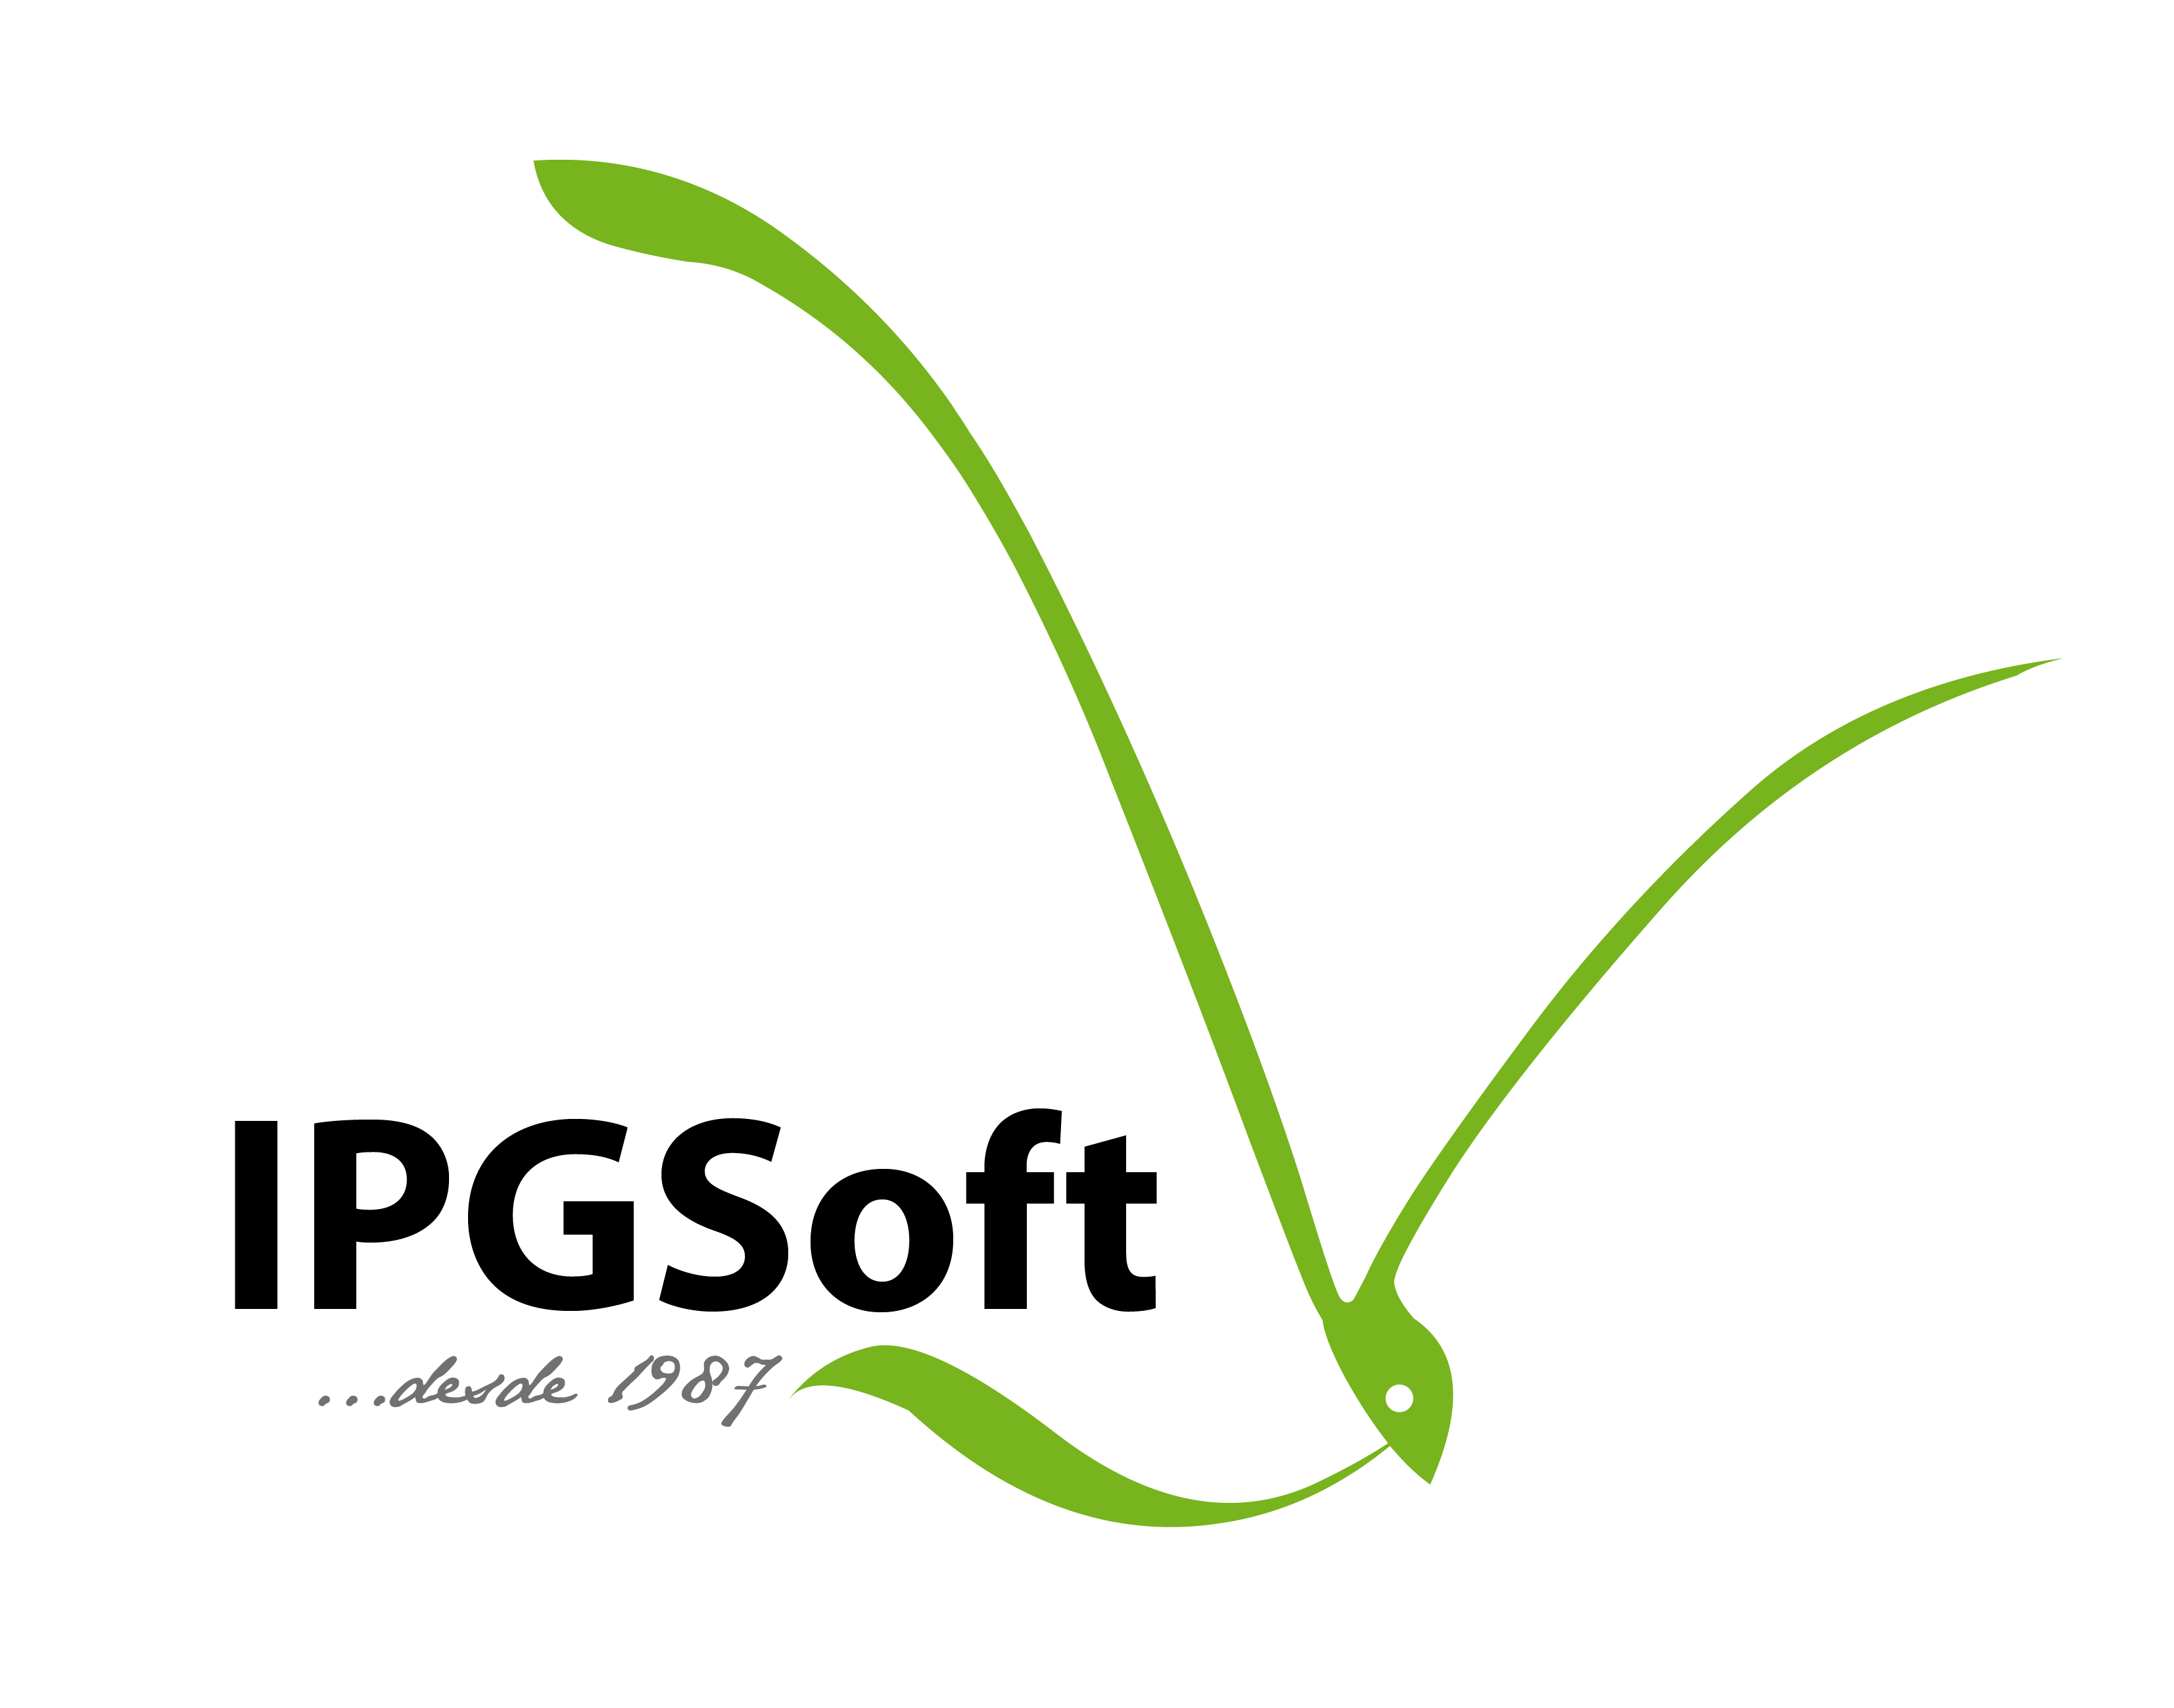 IPG Soft (www.ipgsoft.com)